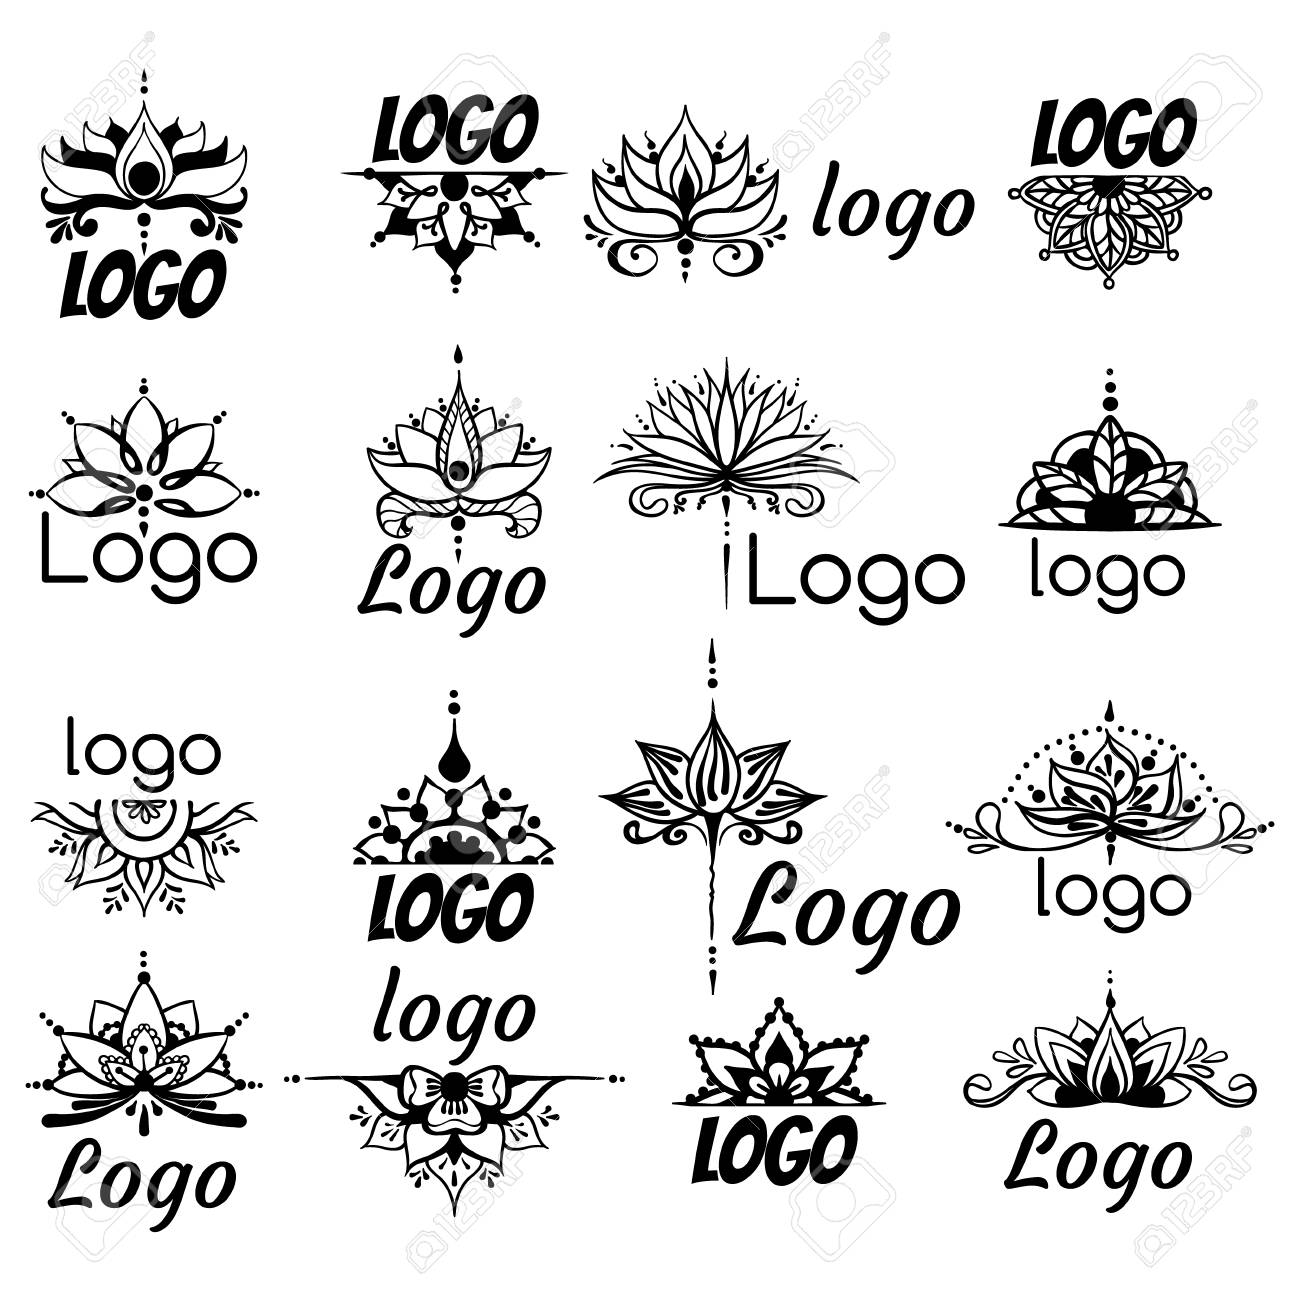 Sixteen Freehand Drawings Of Logos With Lotus Flowers In East